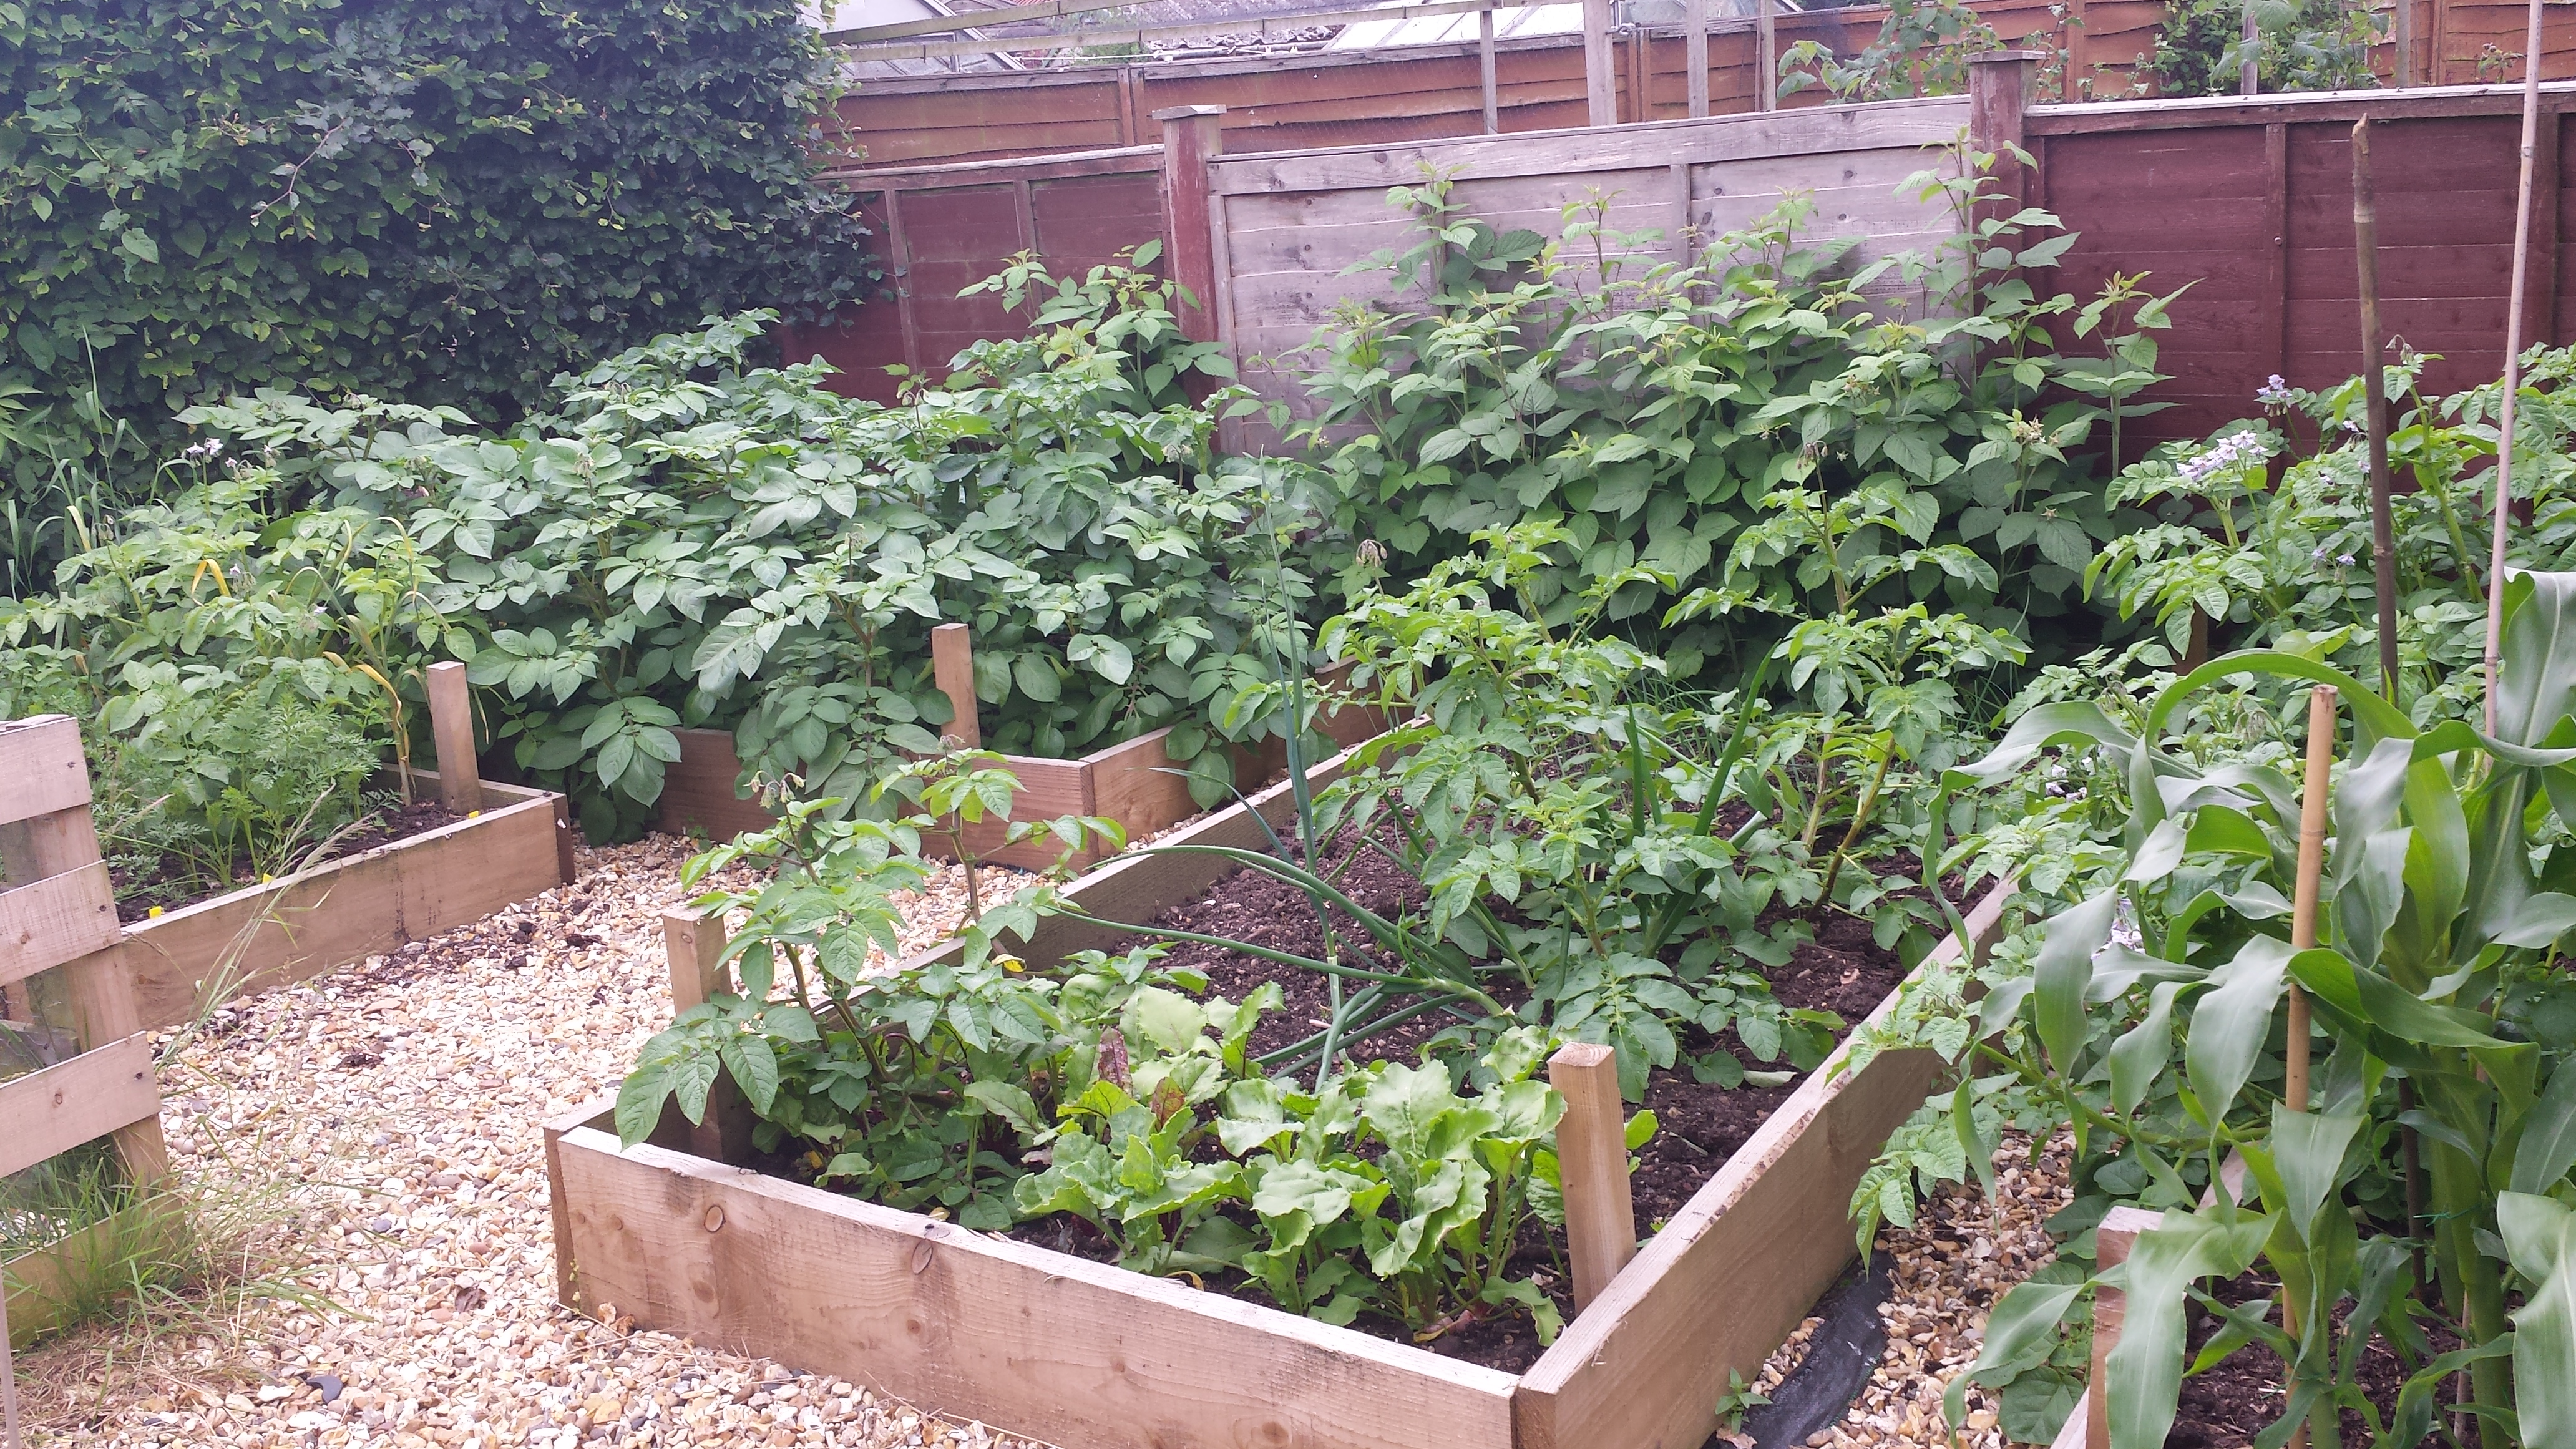 Raised beds full of growing fruit and veg plants